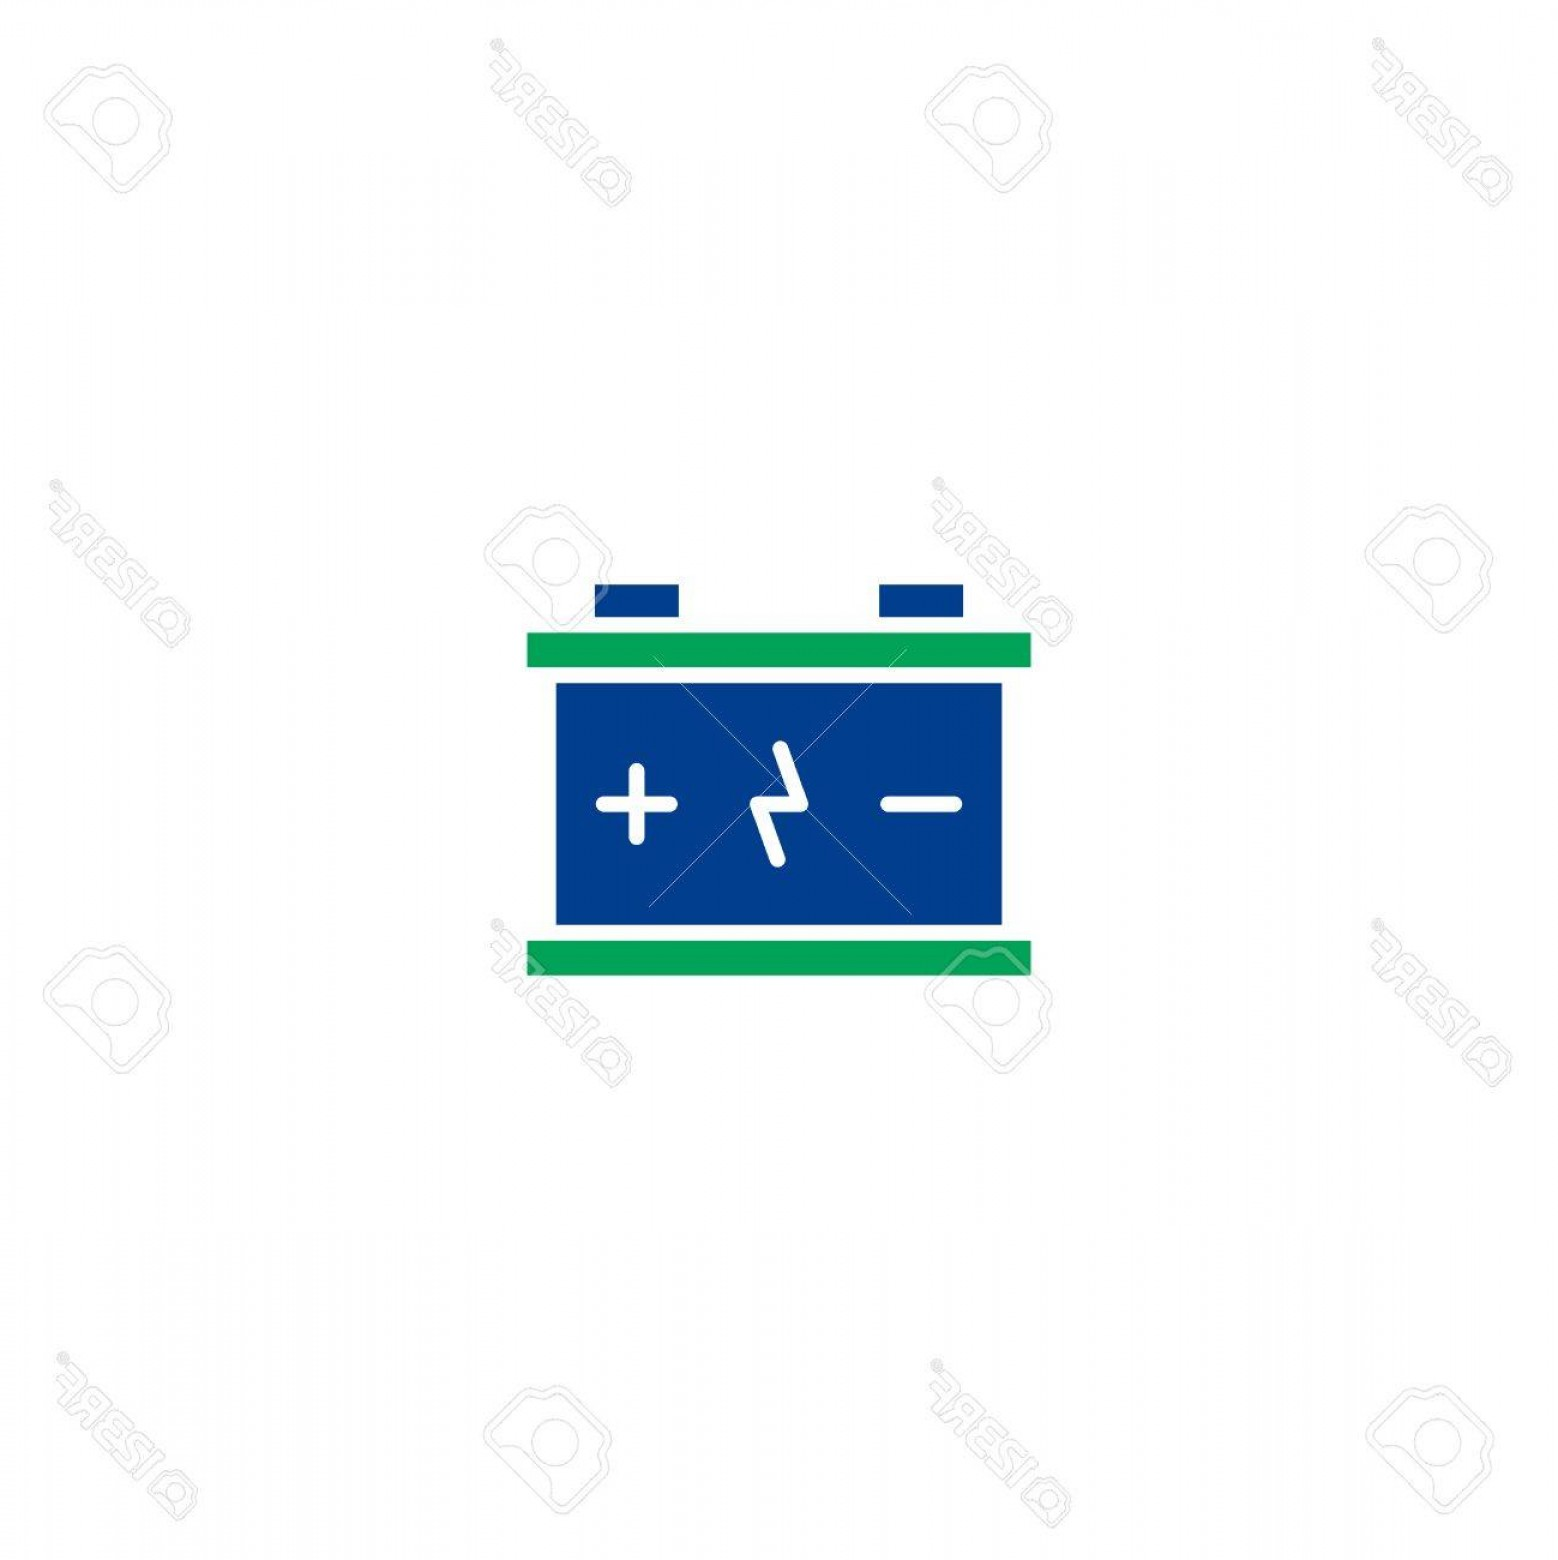 Battery Electricity Vector Images: Photostock Vector Battery Flat Icon Single High Quality Symbol Of Line Electricity Vector For Web Design Or Mobile App